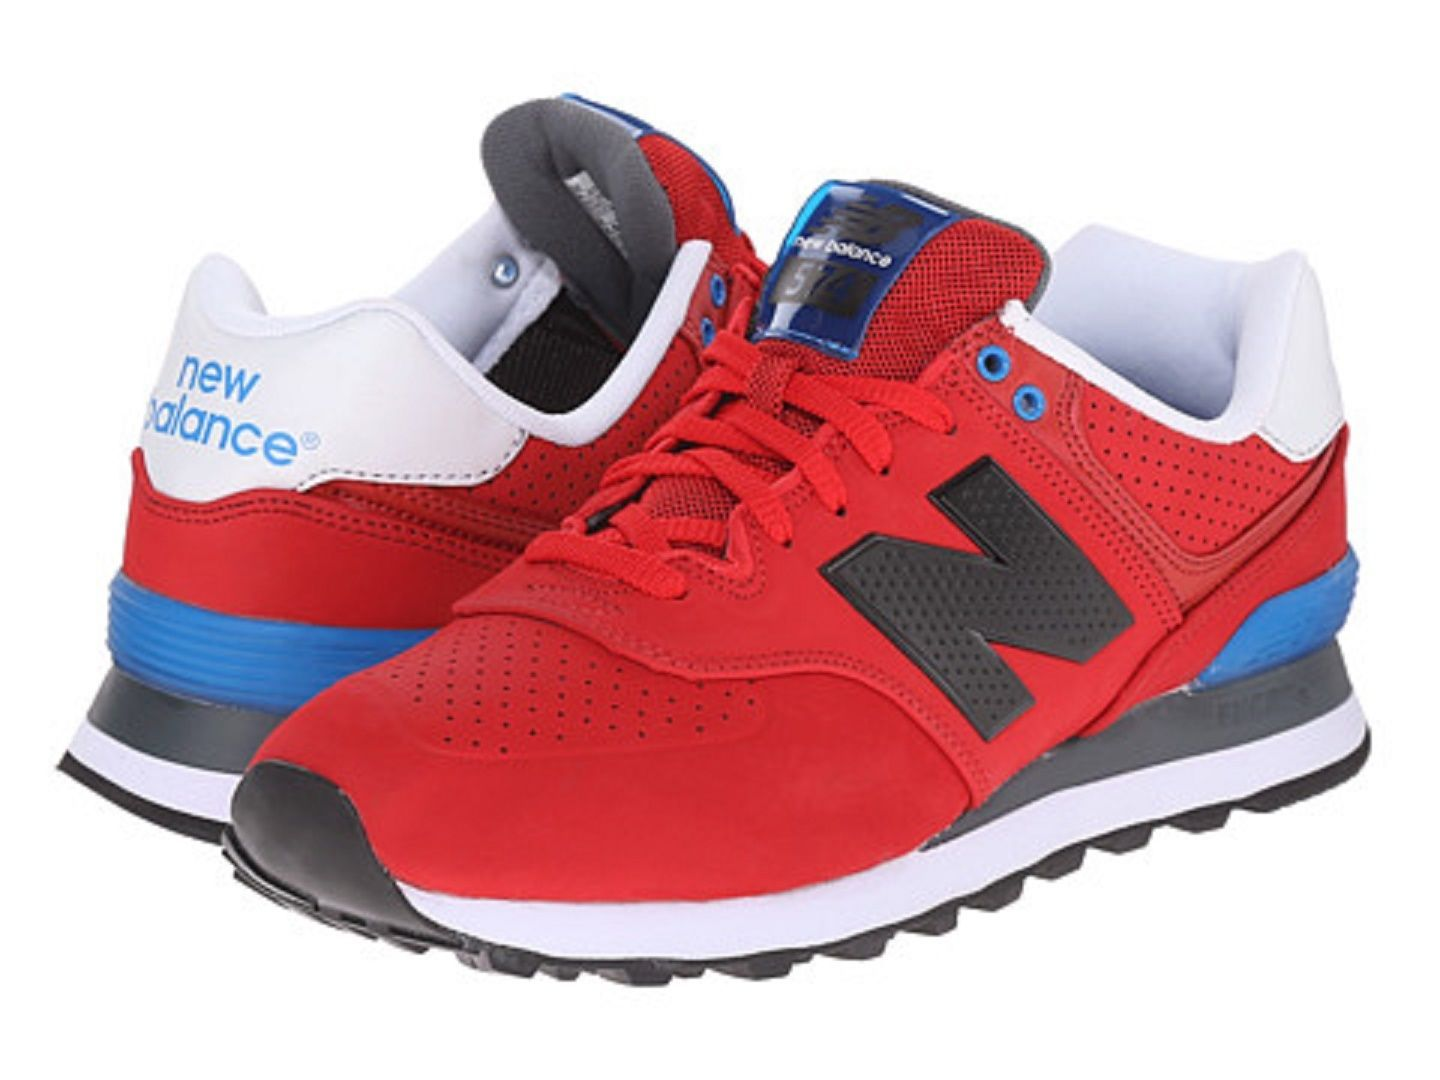 factory price accae d3894 awesome NEW BALANCE ML574ACC ML574 Mn s (M) Red Blue Suede Mesh Athletic